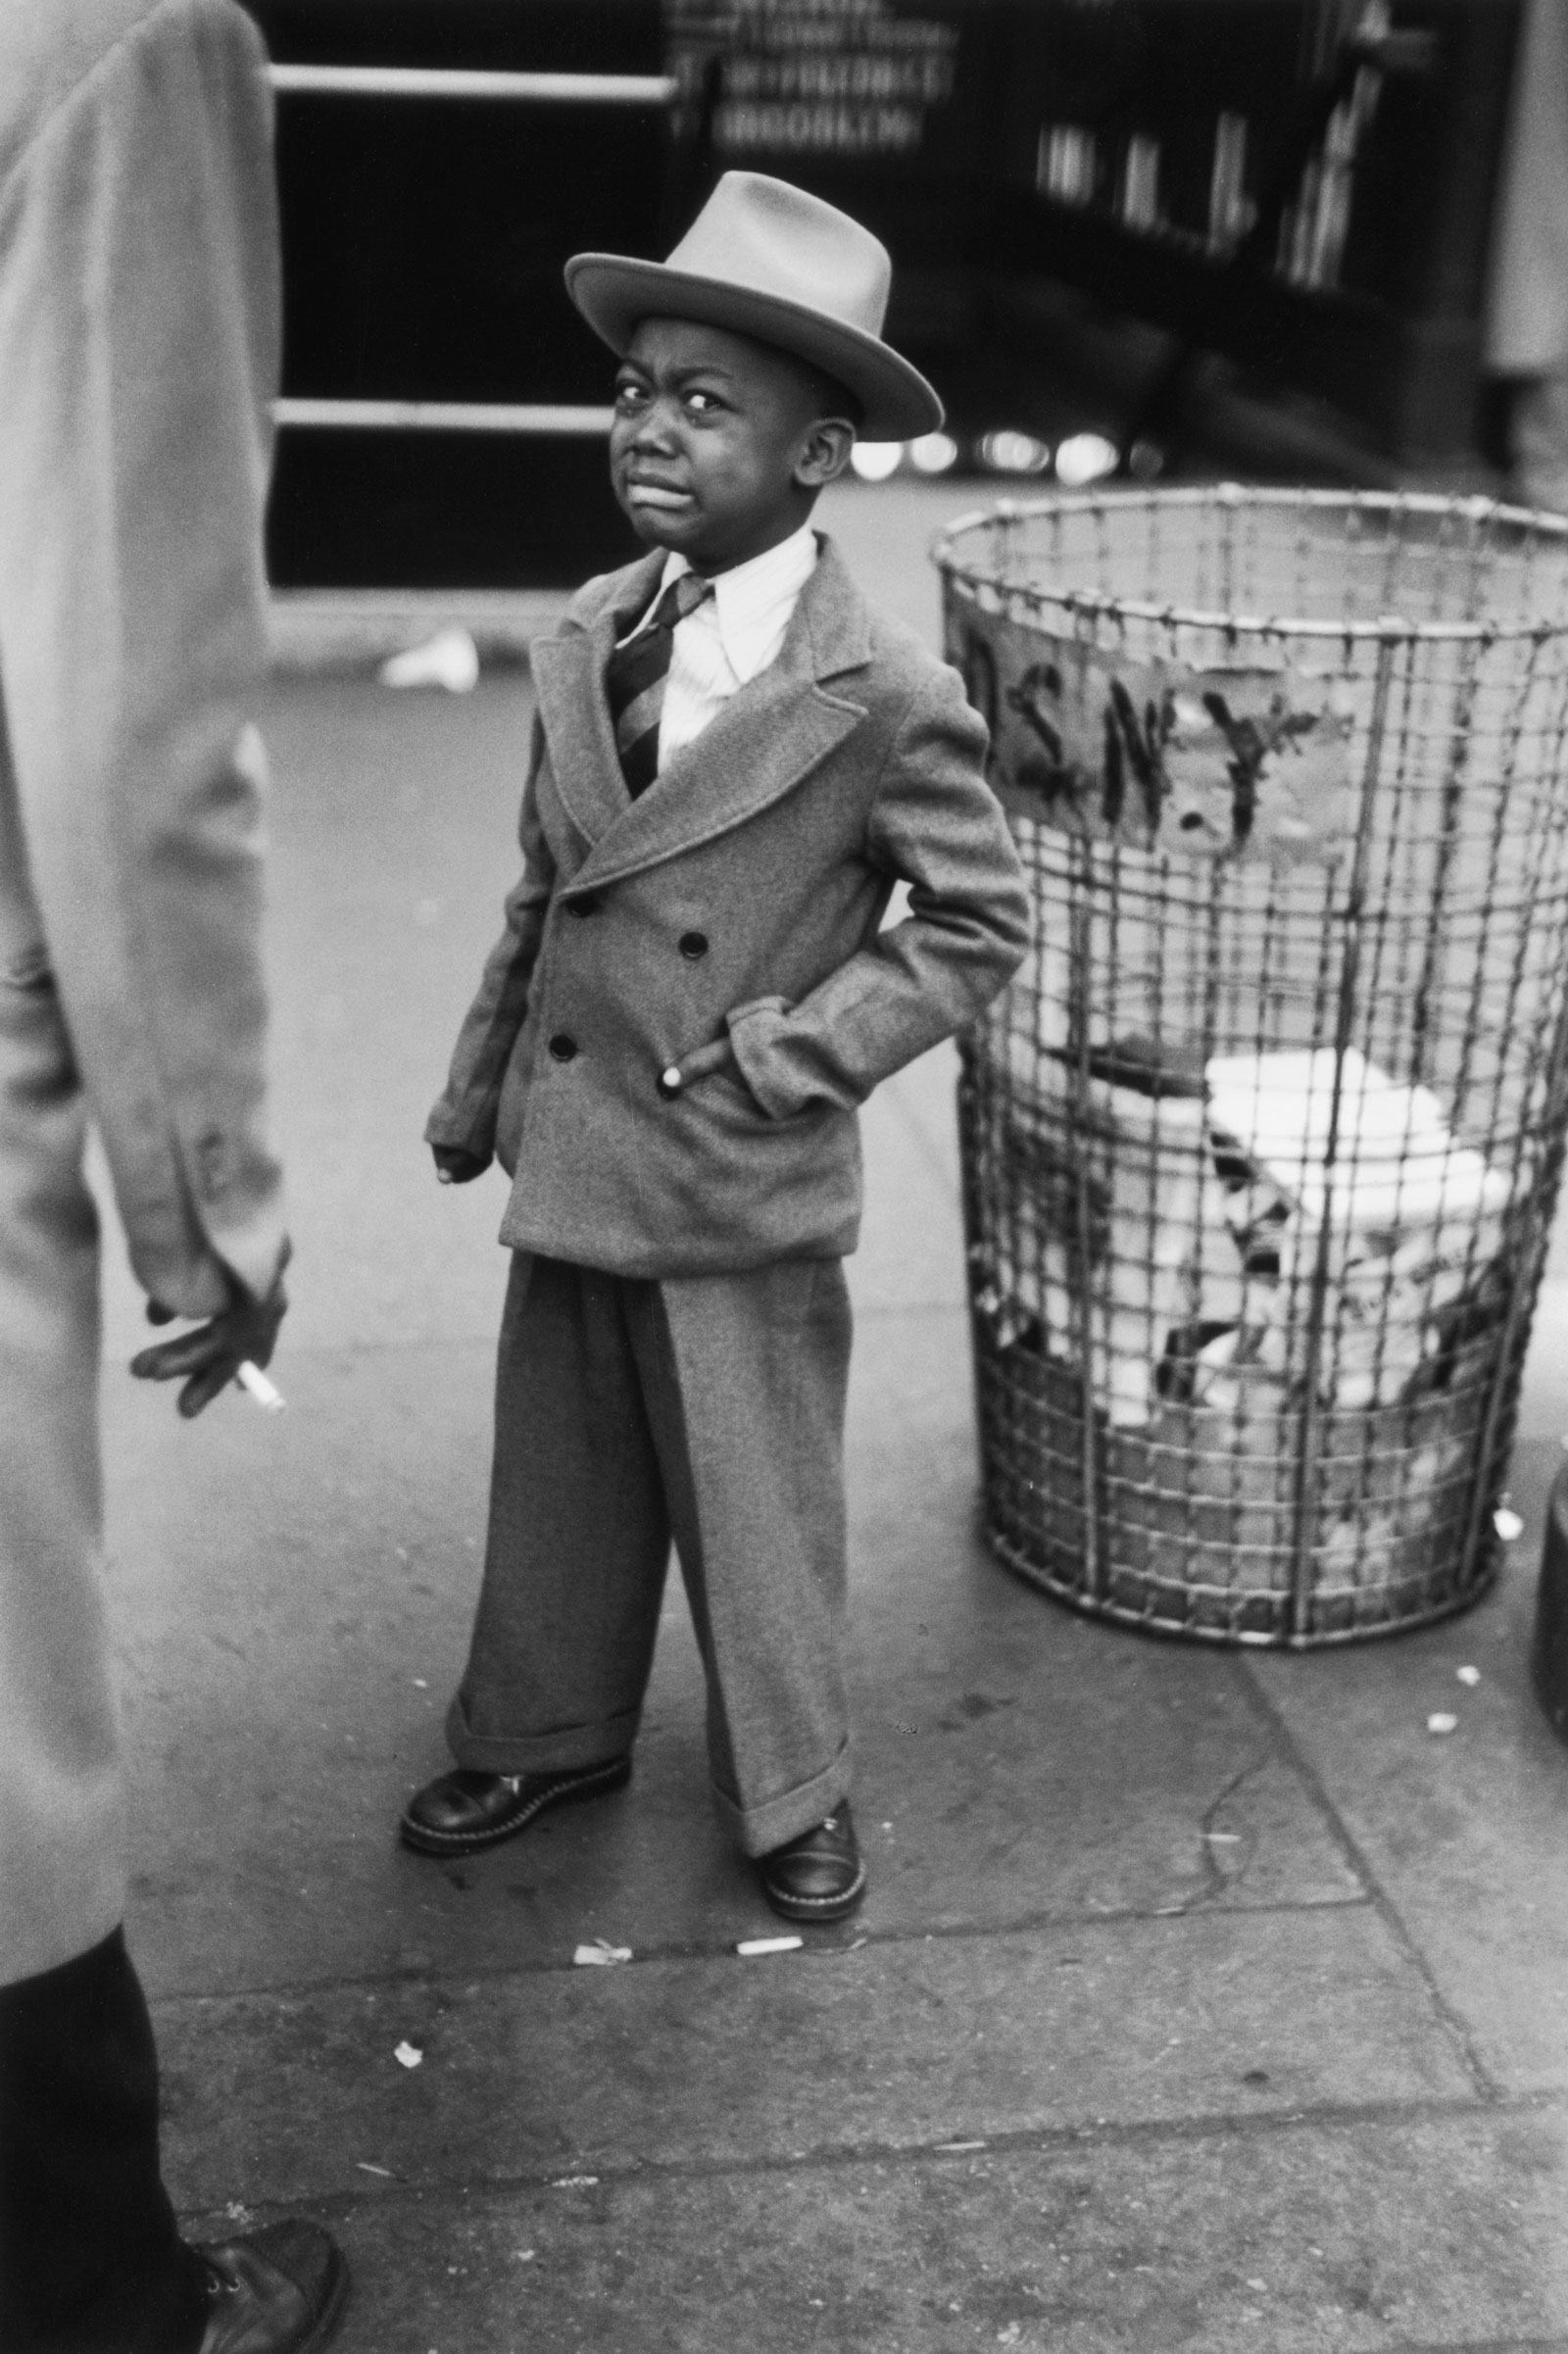 Ruth Orkin Tired Little Boy Crying Outside Circus New York City 1948